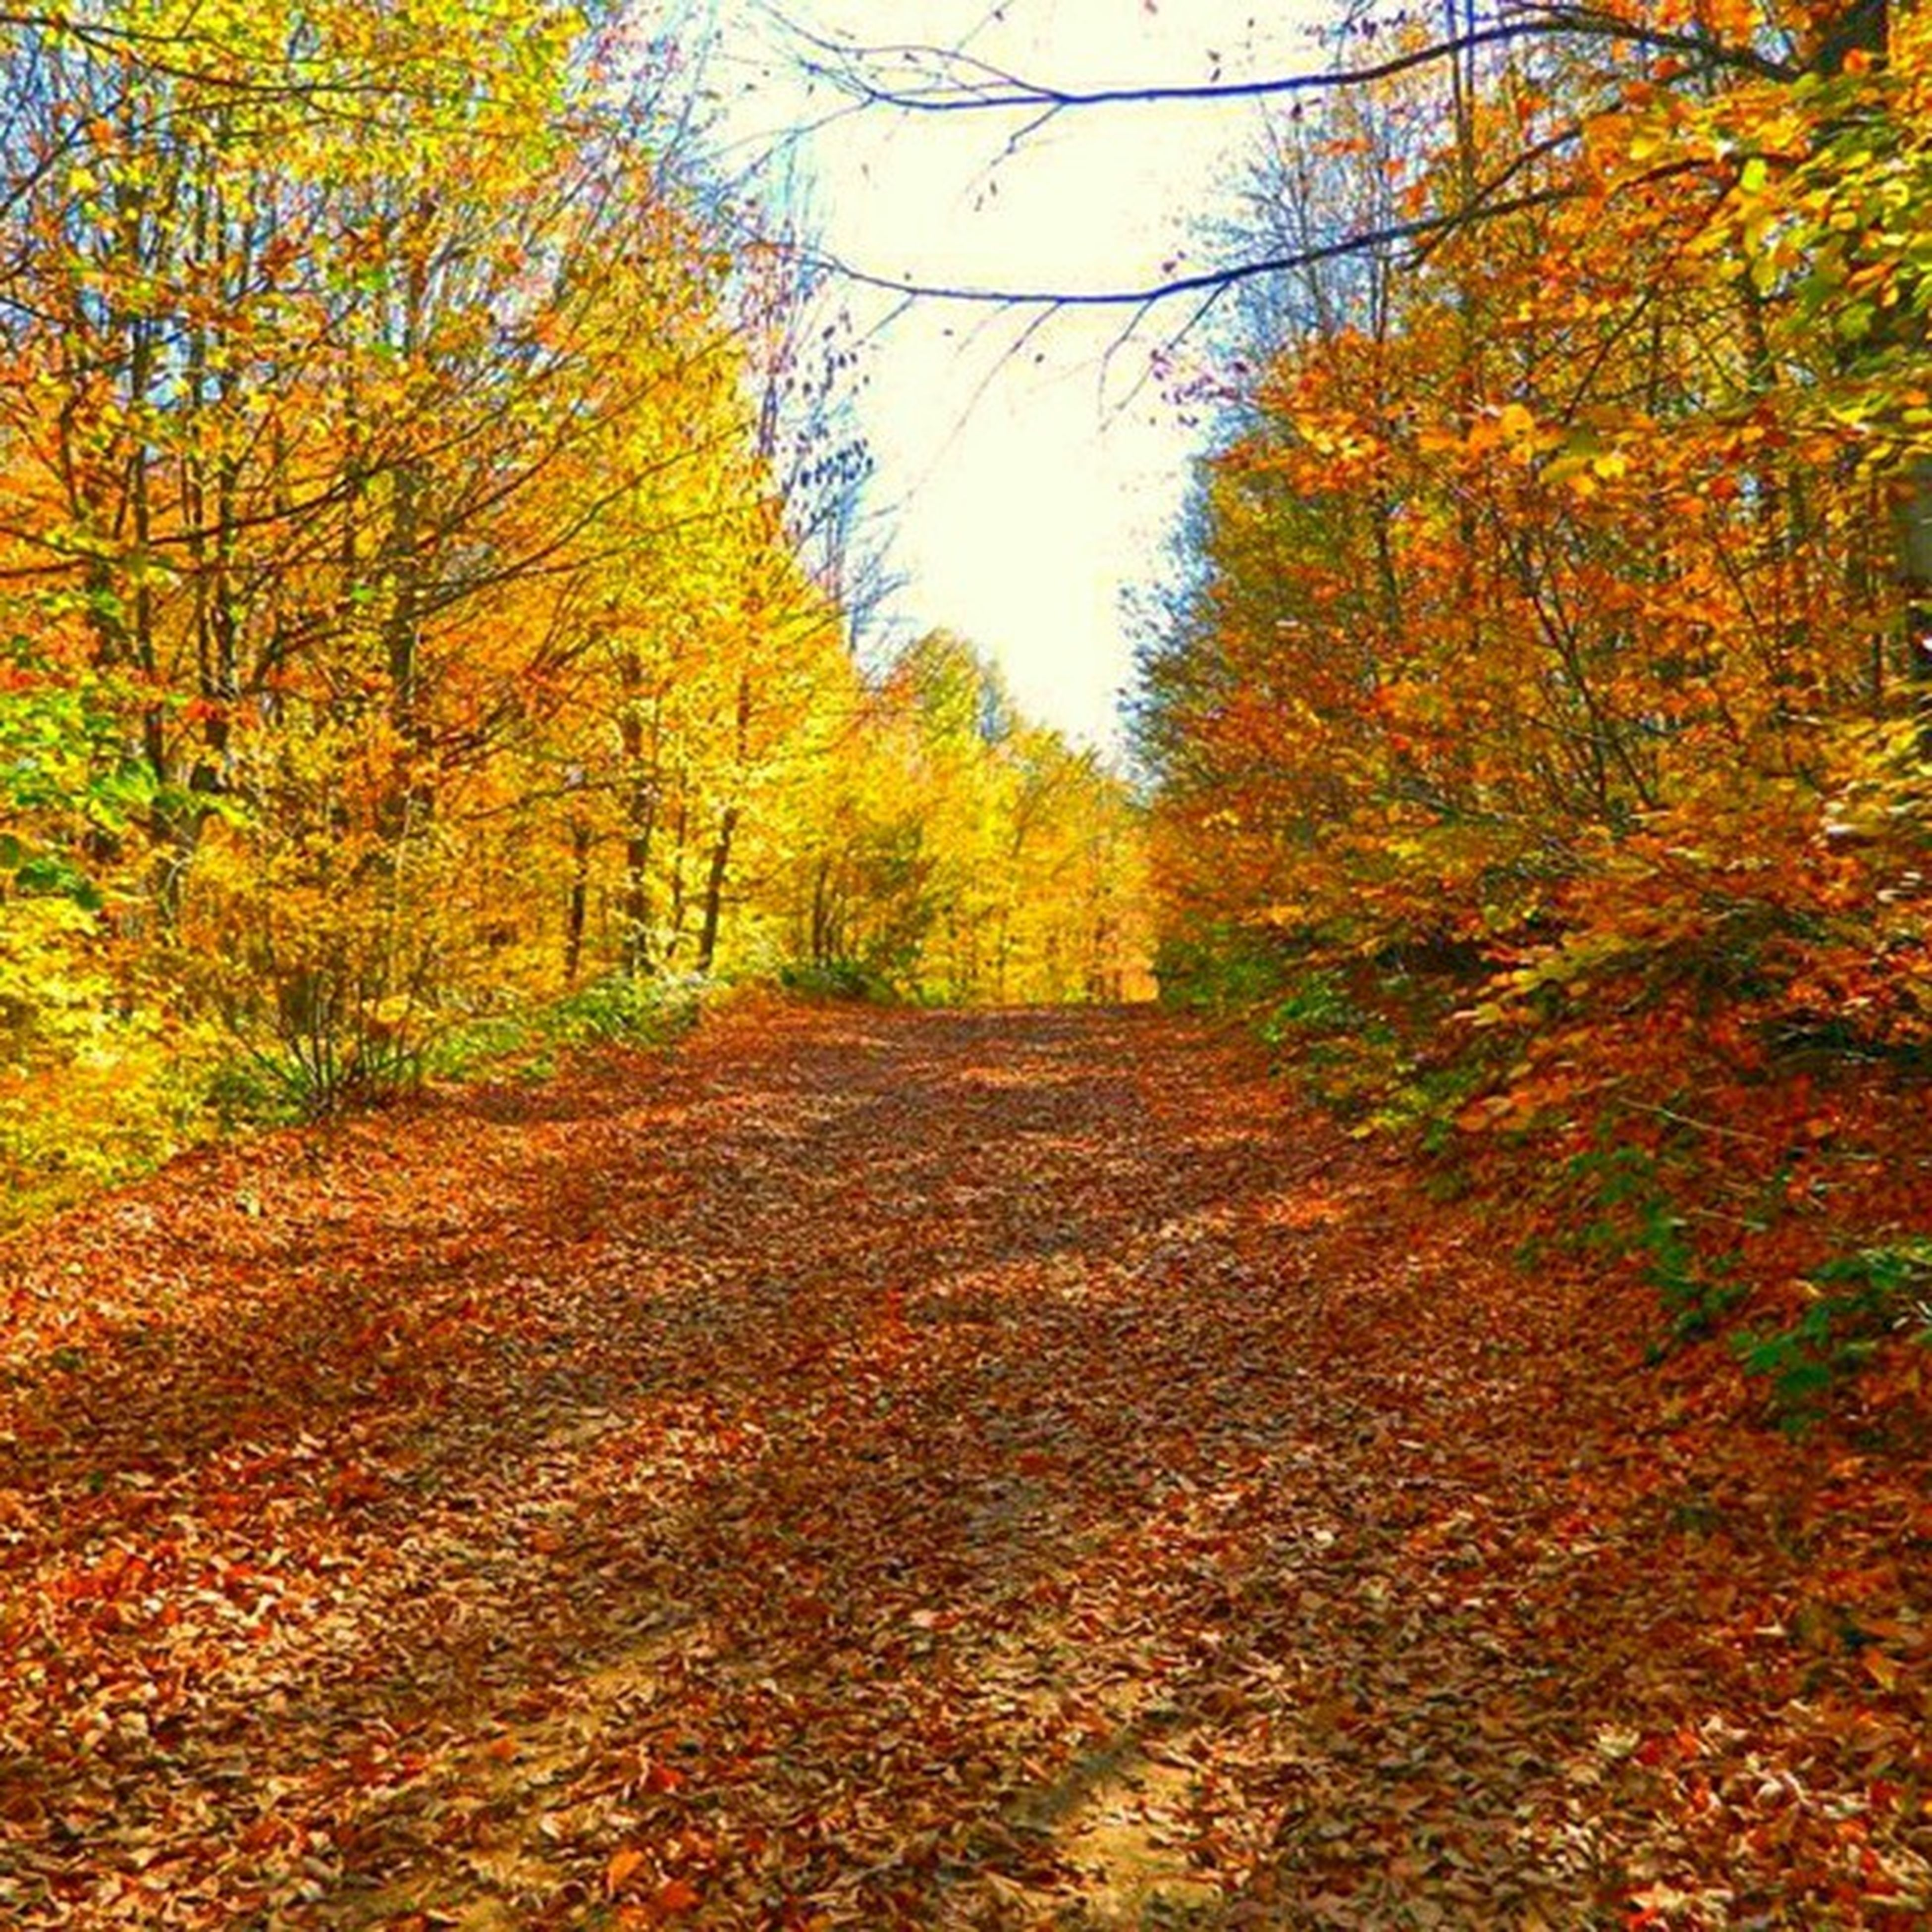 autumn, tree, change, the way forward, season, tranquility, diminishing perspective, nature, orange color, tranquil scene, leaf, beauty in nature, vanishing point, growth, scenics, yellow, forest, footpath, branch, dirt road